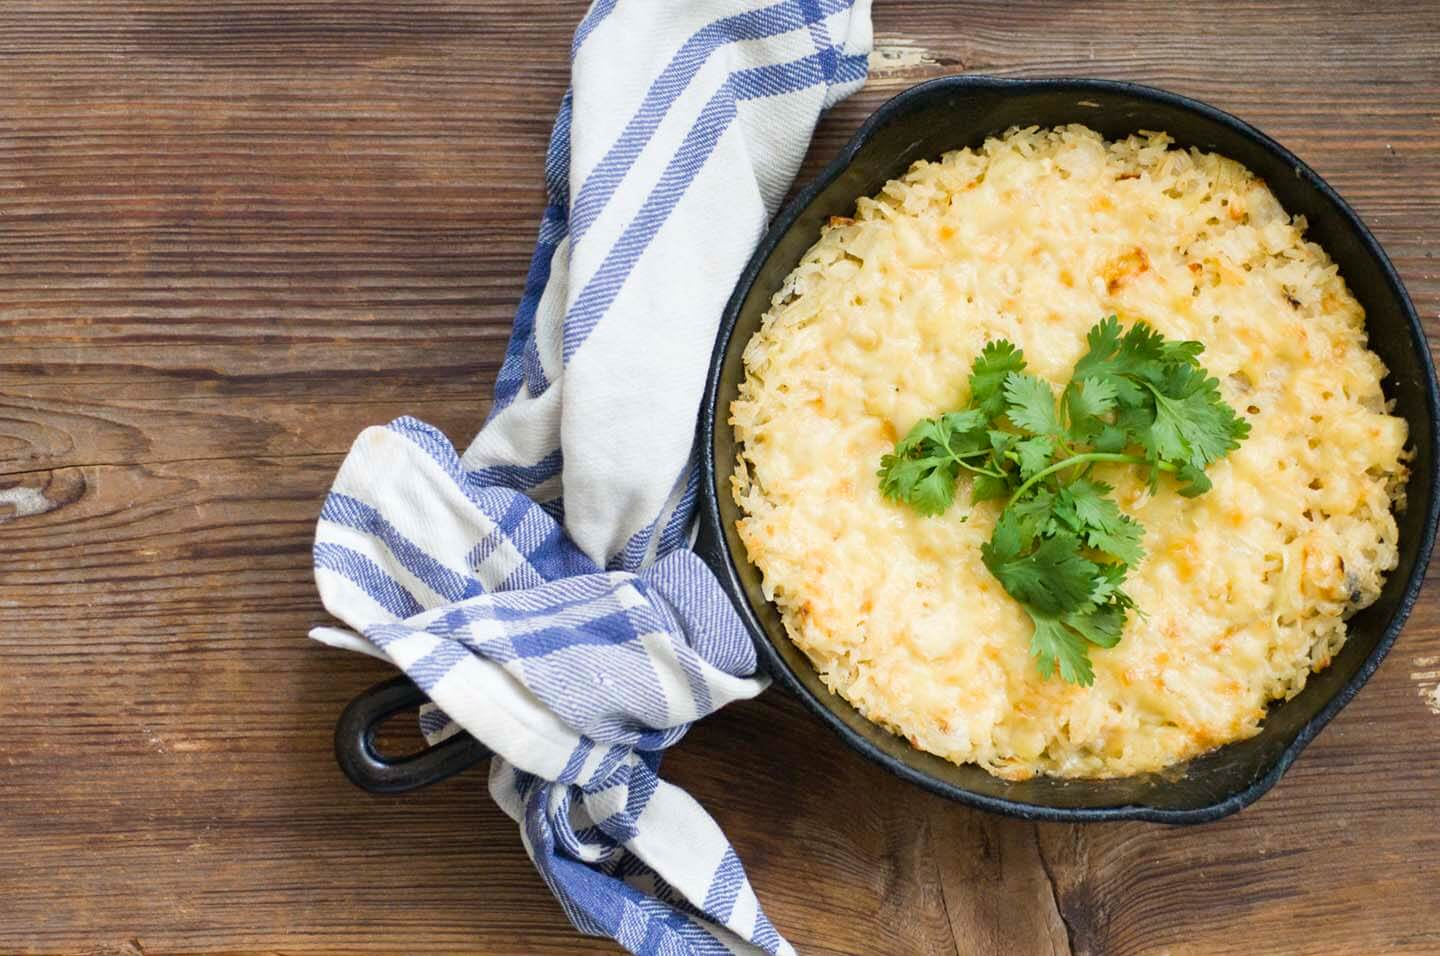 Texas sweet onion casserole and rice casserole | Homesick Texan